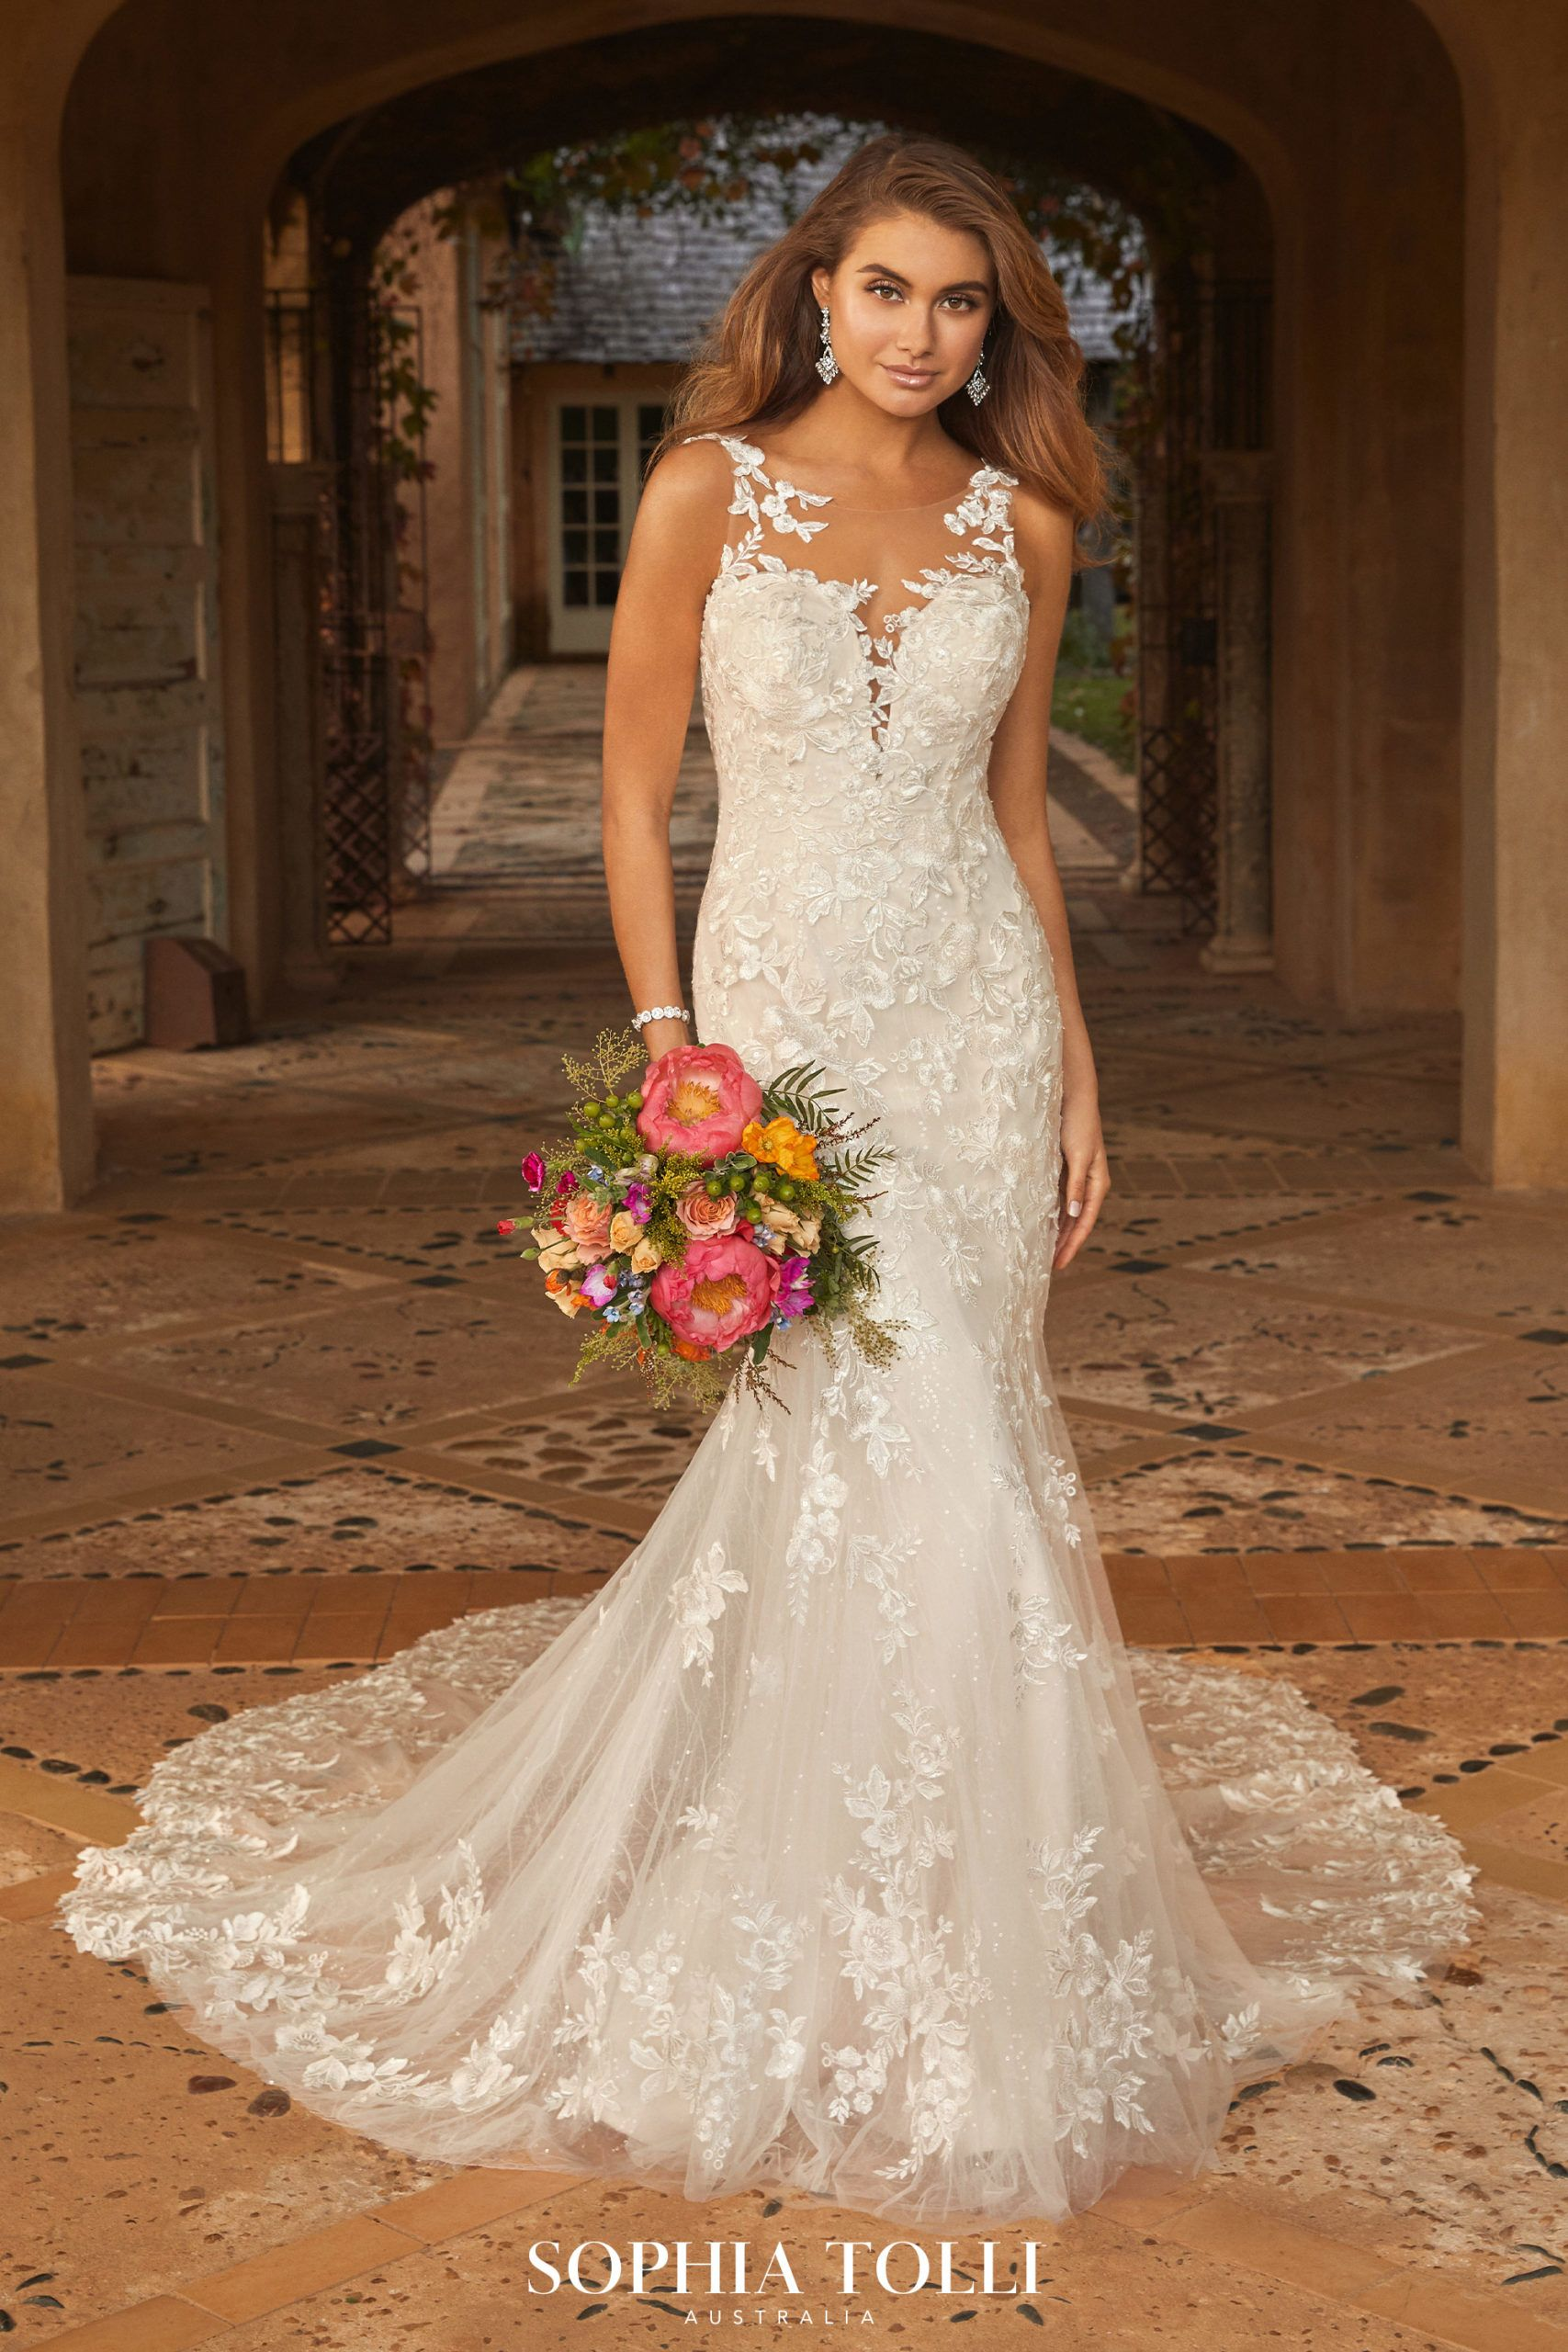 Sophia Tolli 2020 Collection - The Bridal Lounge